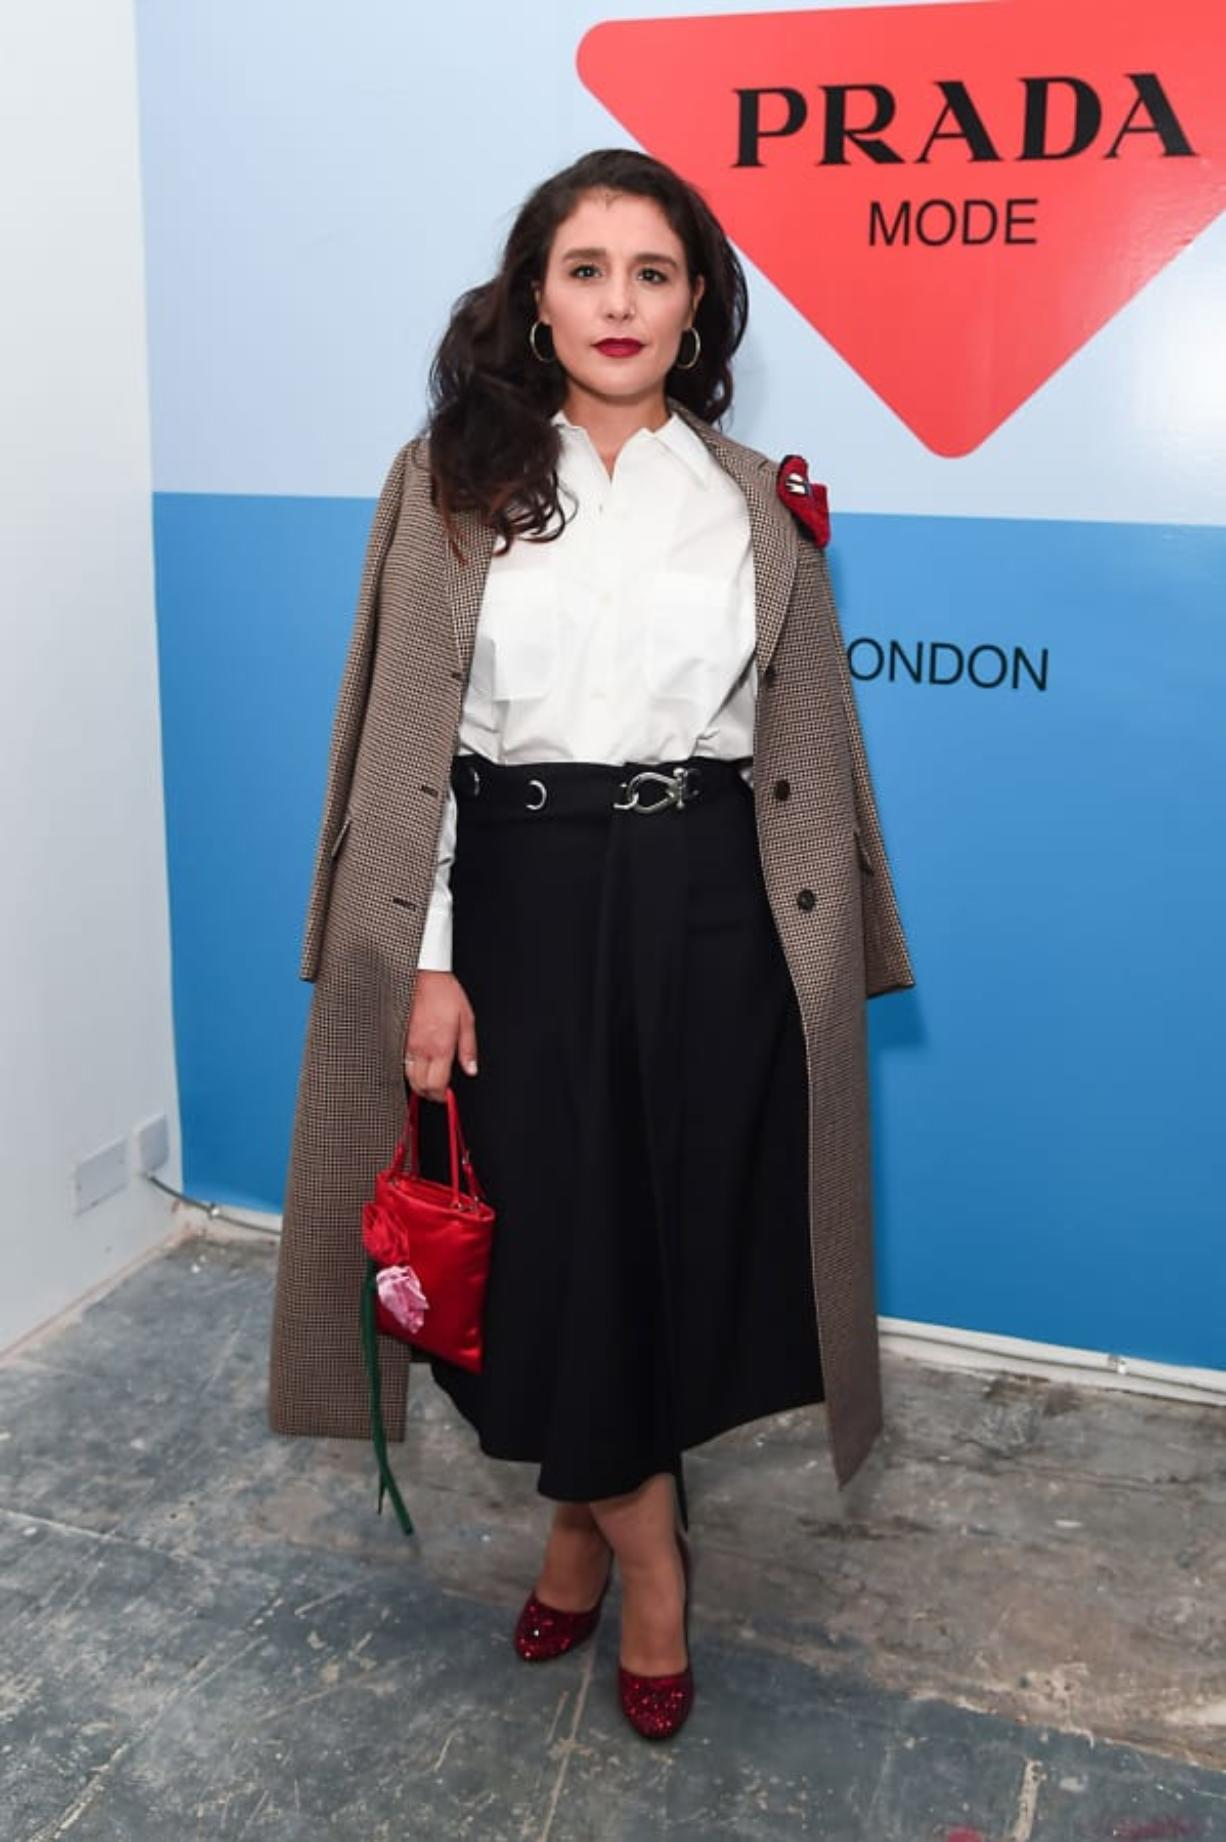 Jessie Ware attends Prada Mode London on Oct. 03, 2019, in London. Ware shot her recent music videos while in quarantine. (Eamonn M.